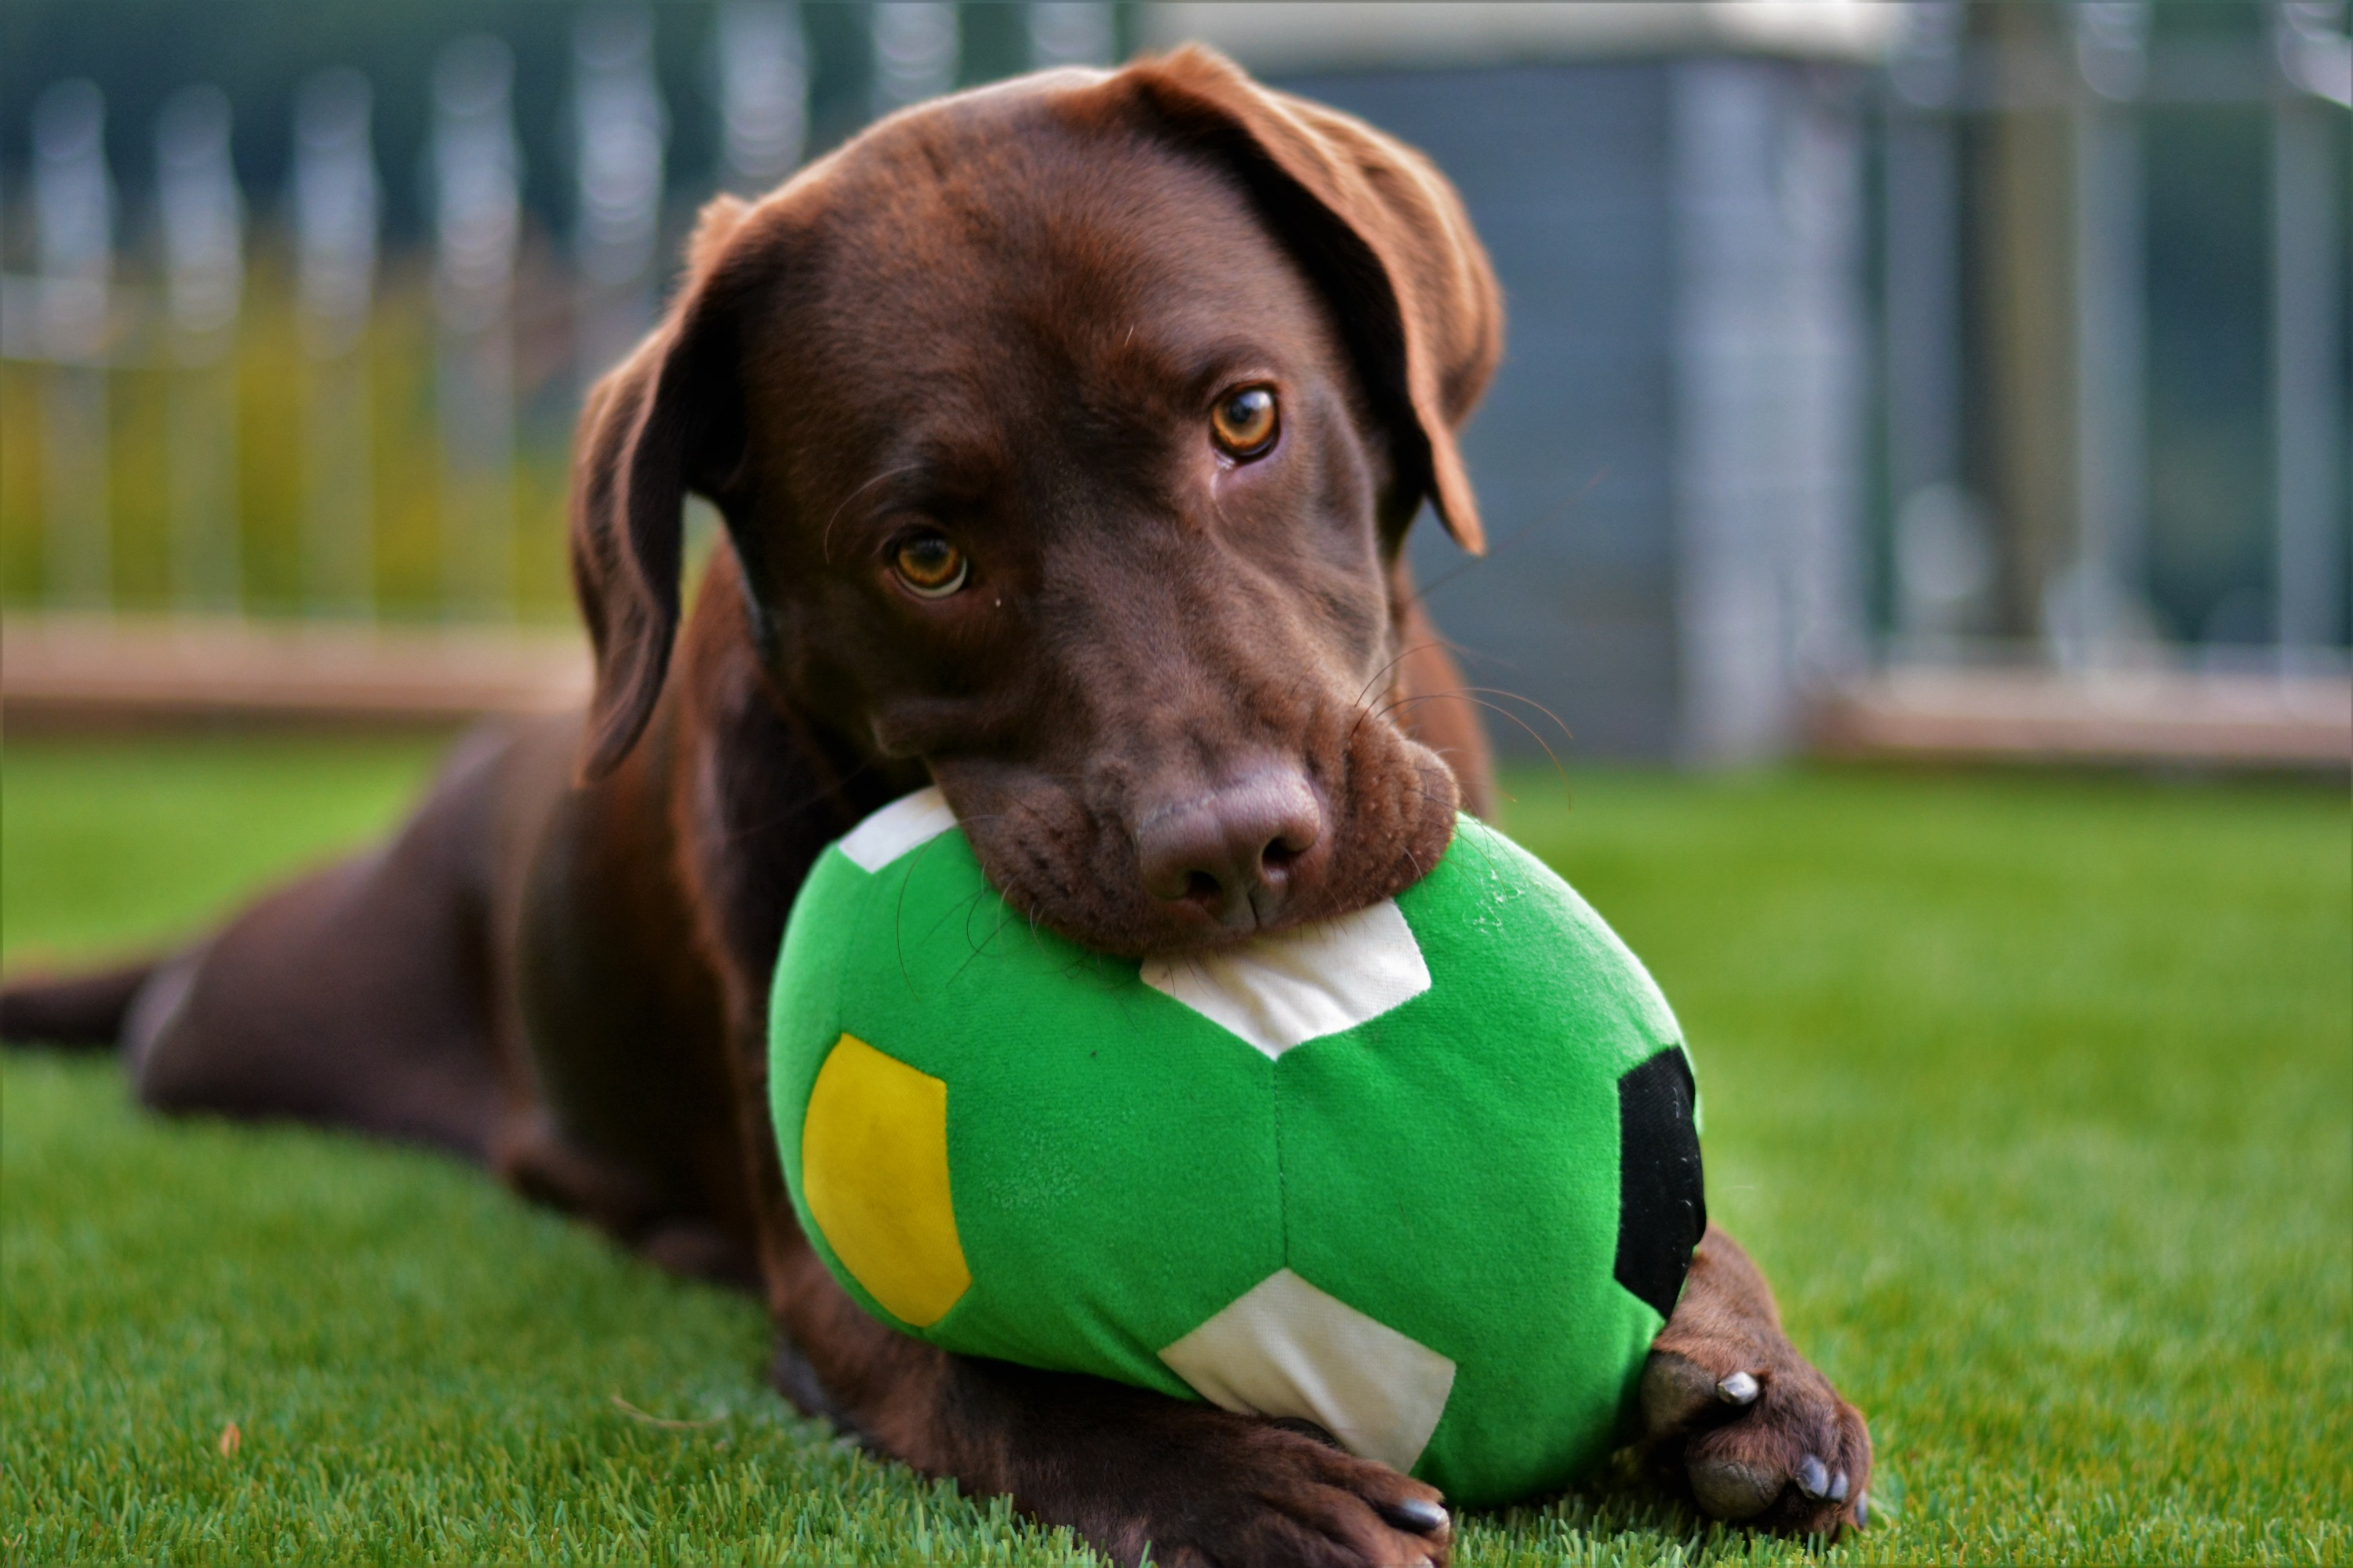 A brown Labrador Retriever lays in a backyard with green grass with a large plush green ball in his mouth.